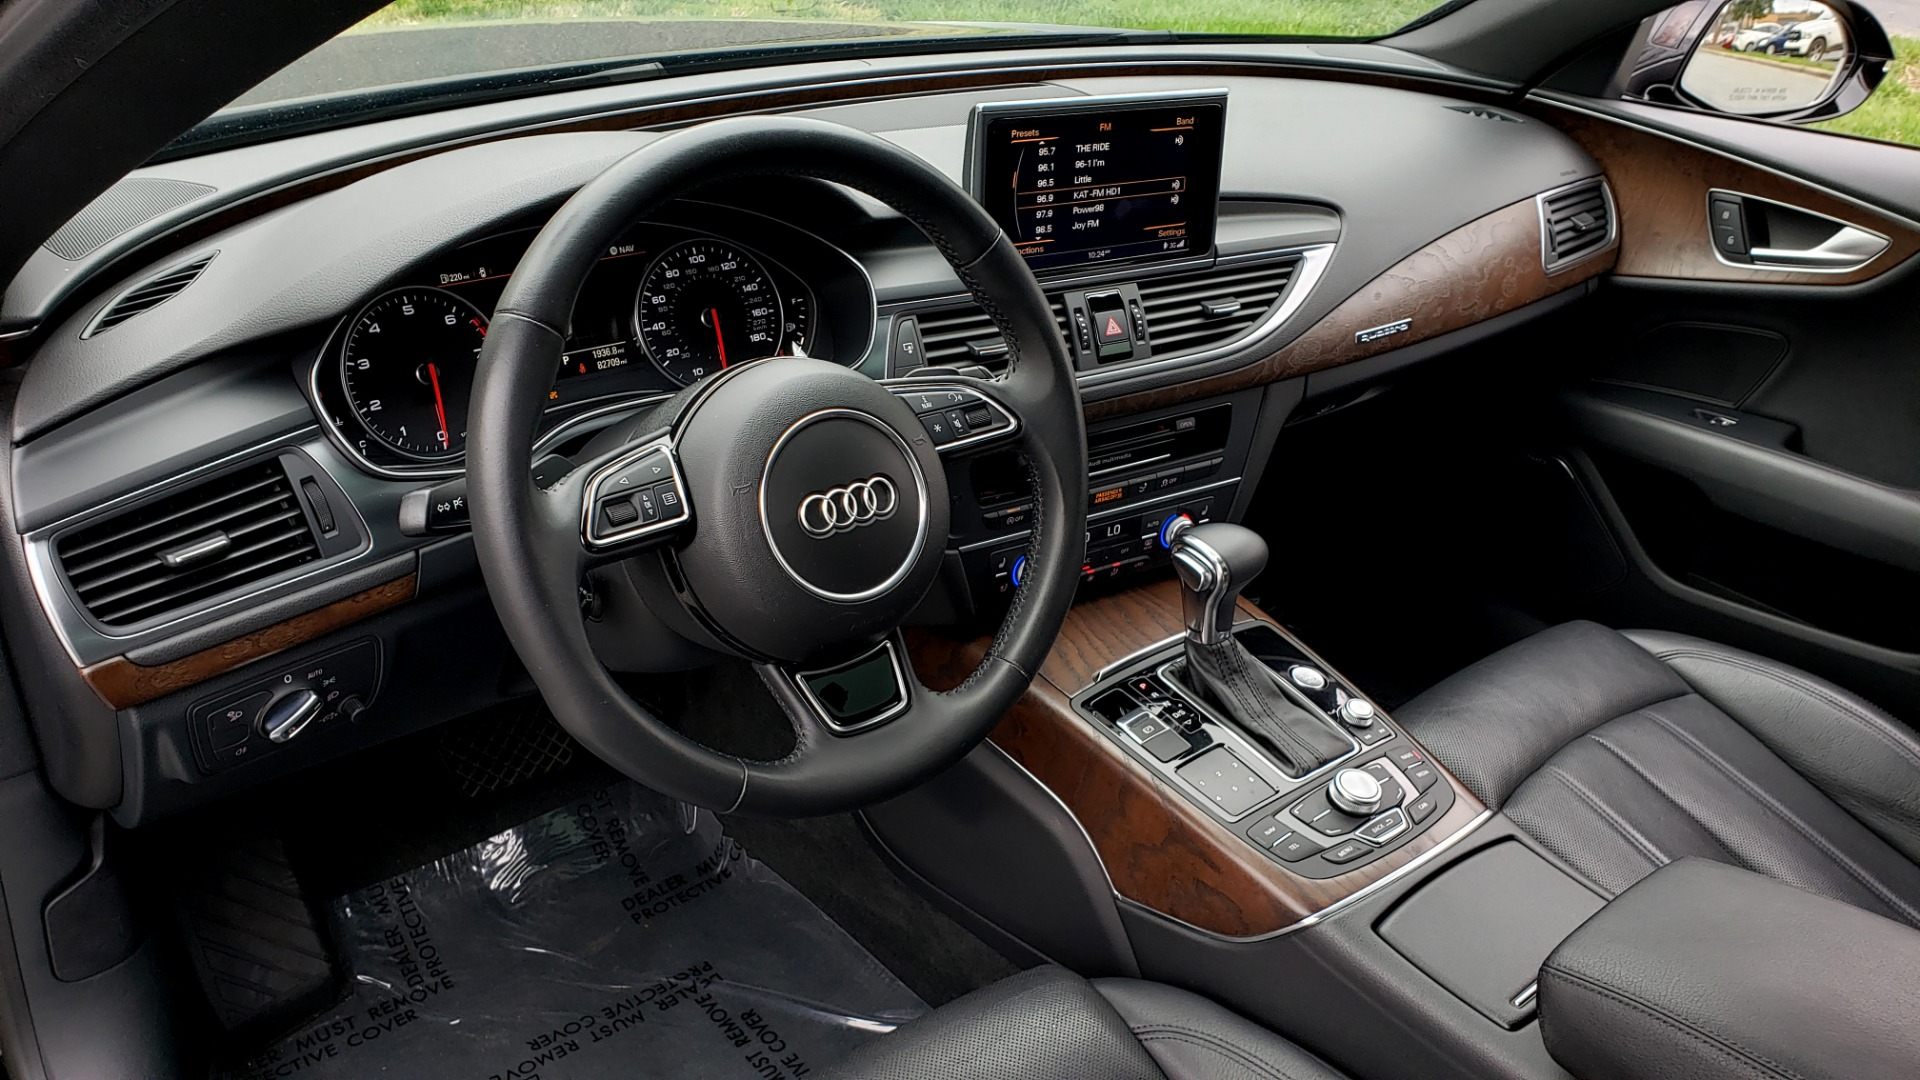 Used 2014 Audi A7 3.0 PRESTIGE / NAV / SUNROOF / BOSE / REARVIEW for sale Sold at Formula Imports in Charlotte NC 28227 42